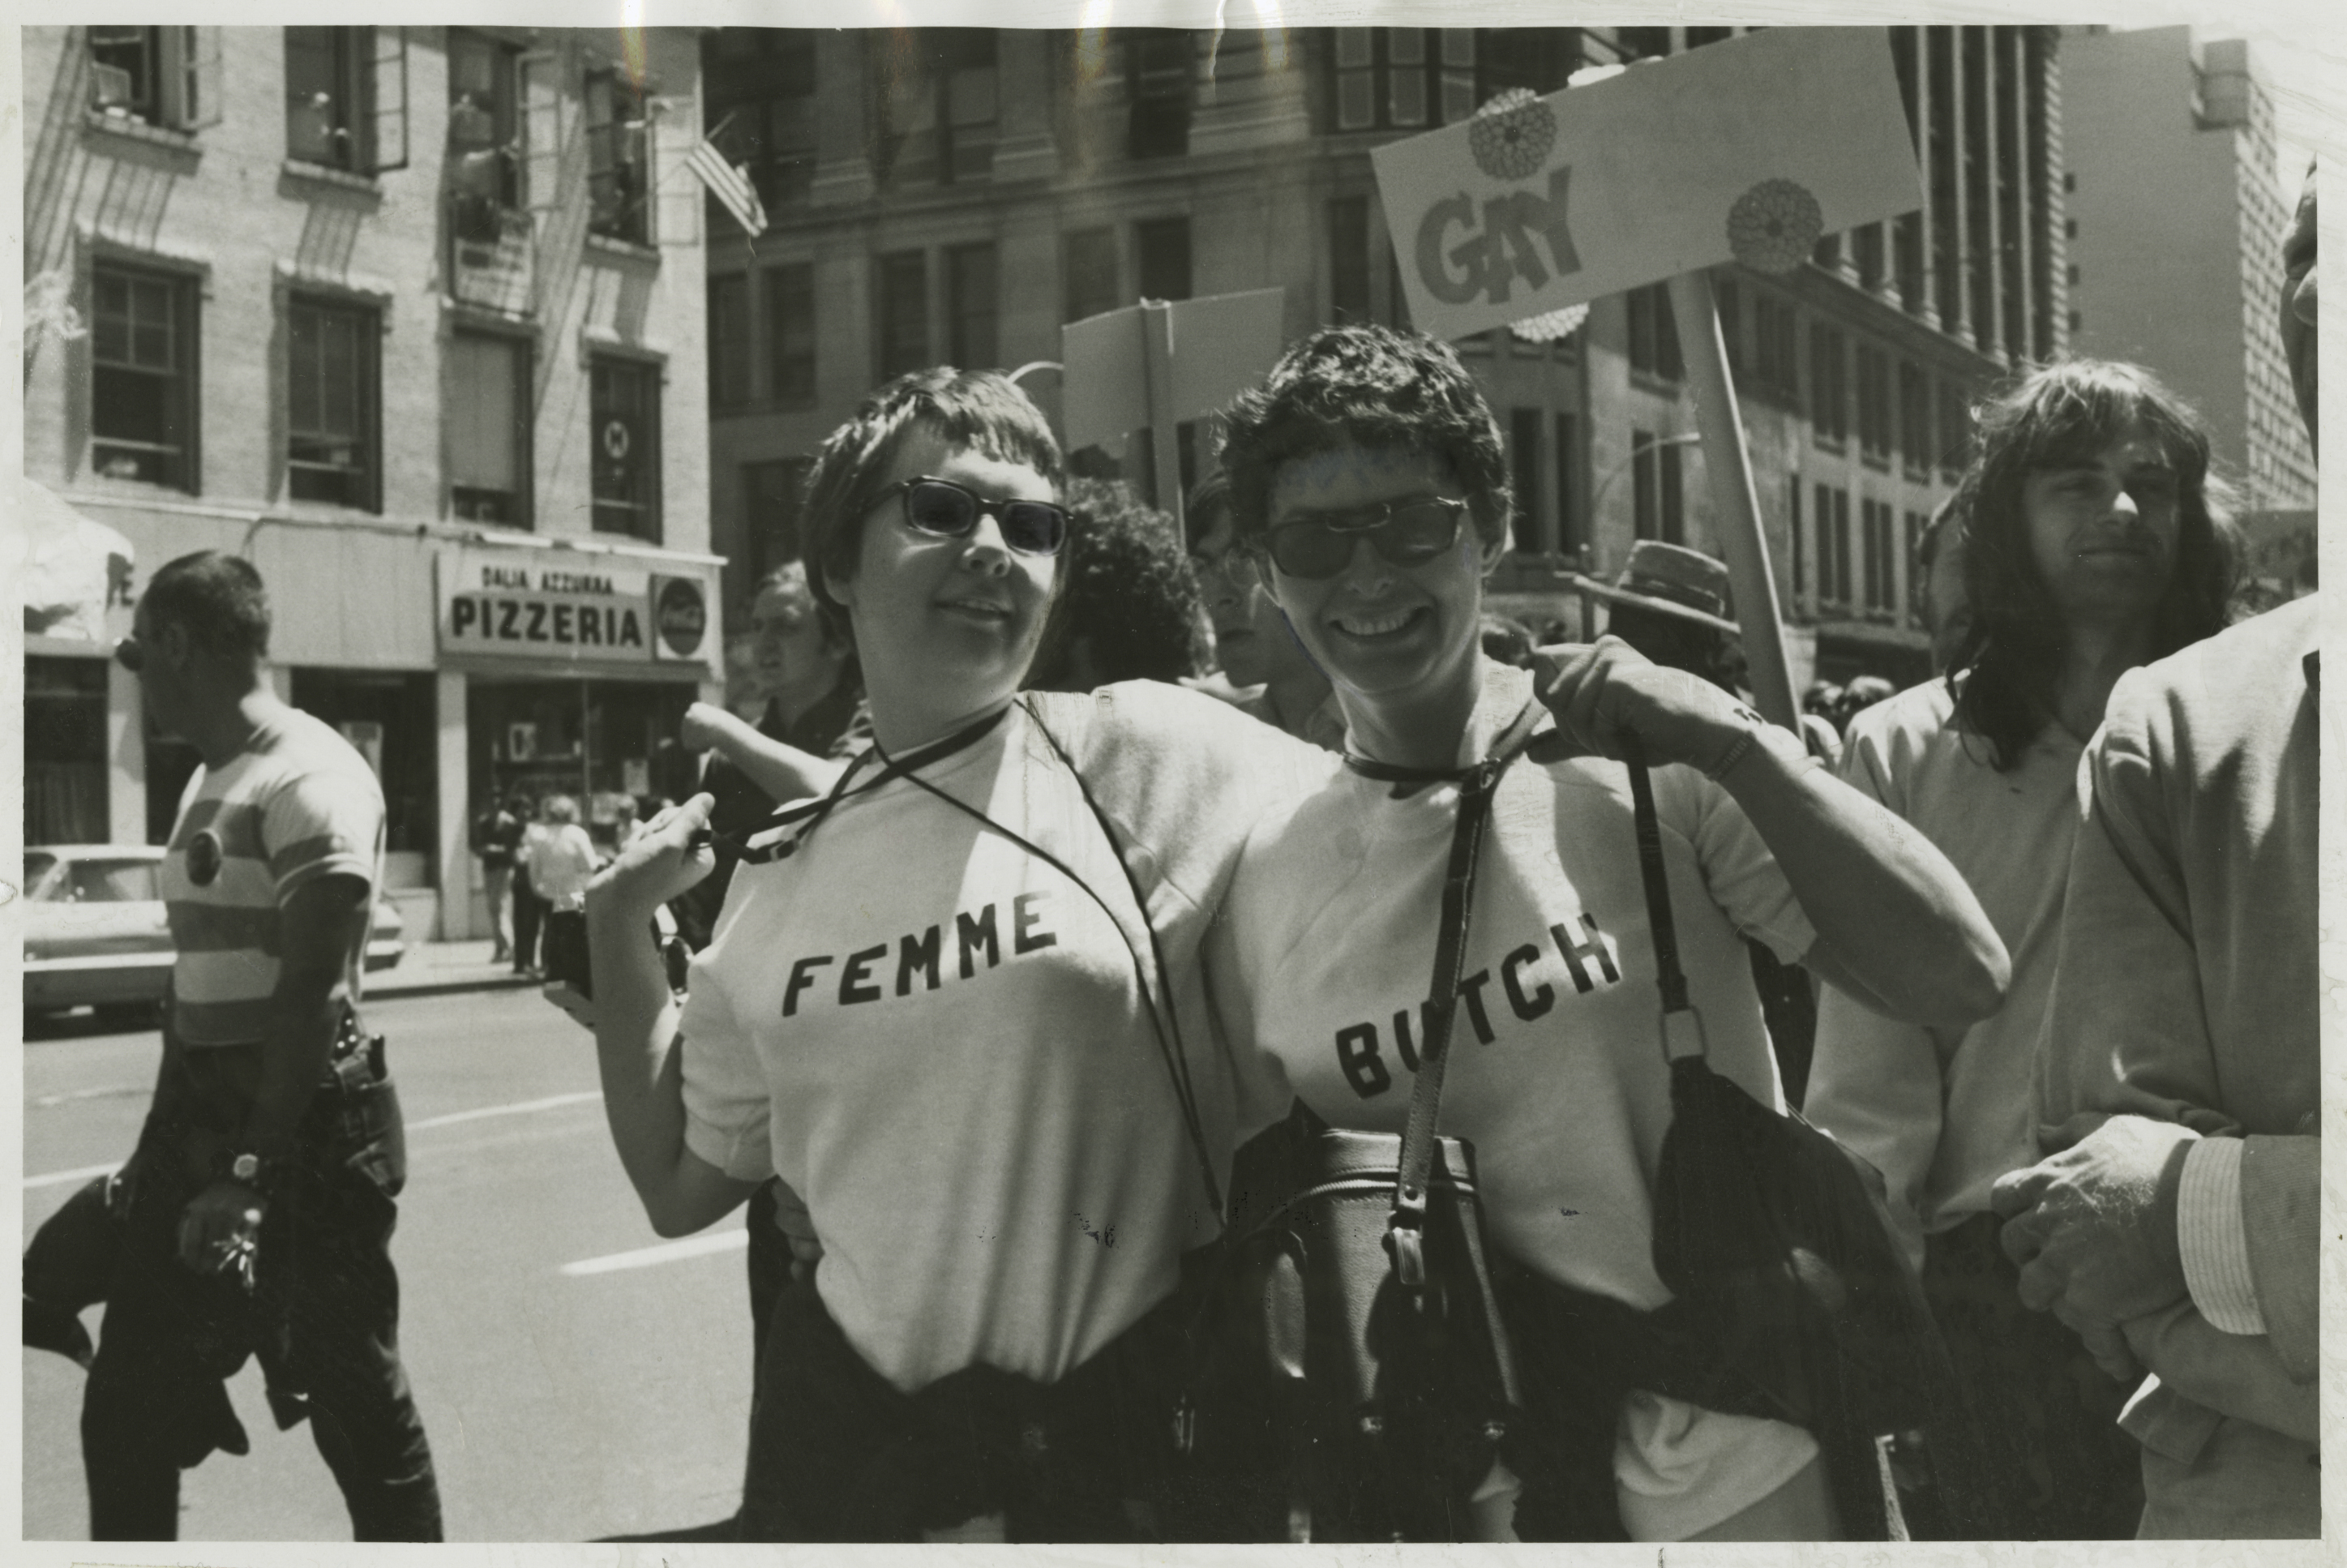 Photos: the NYC Pride March over the years